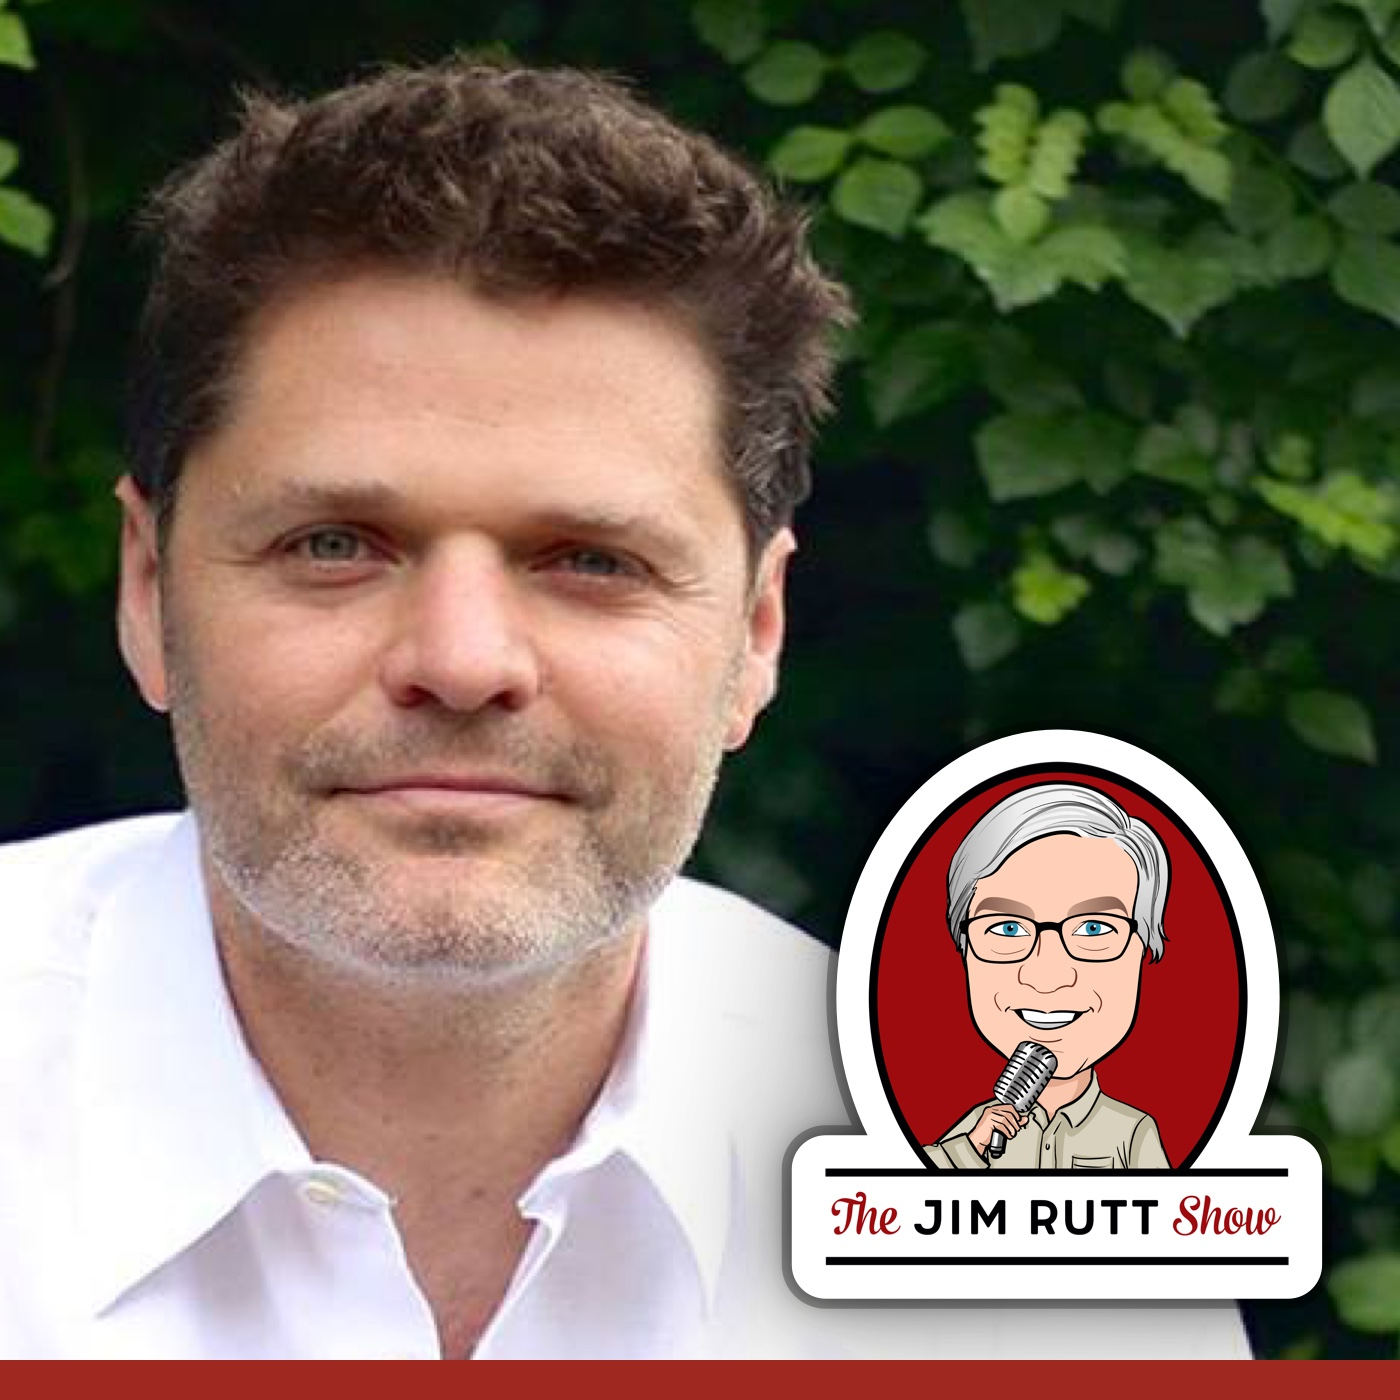 The Jim Rutt Show